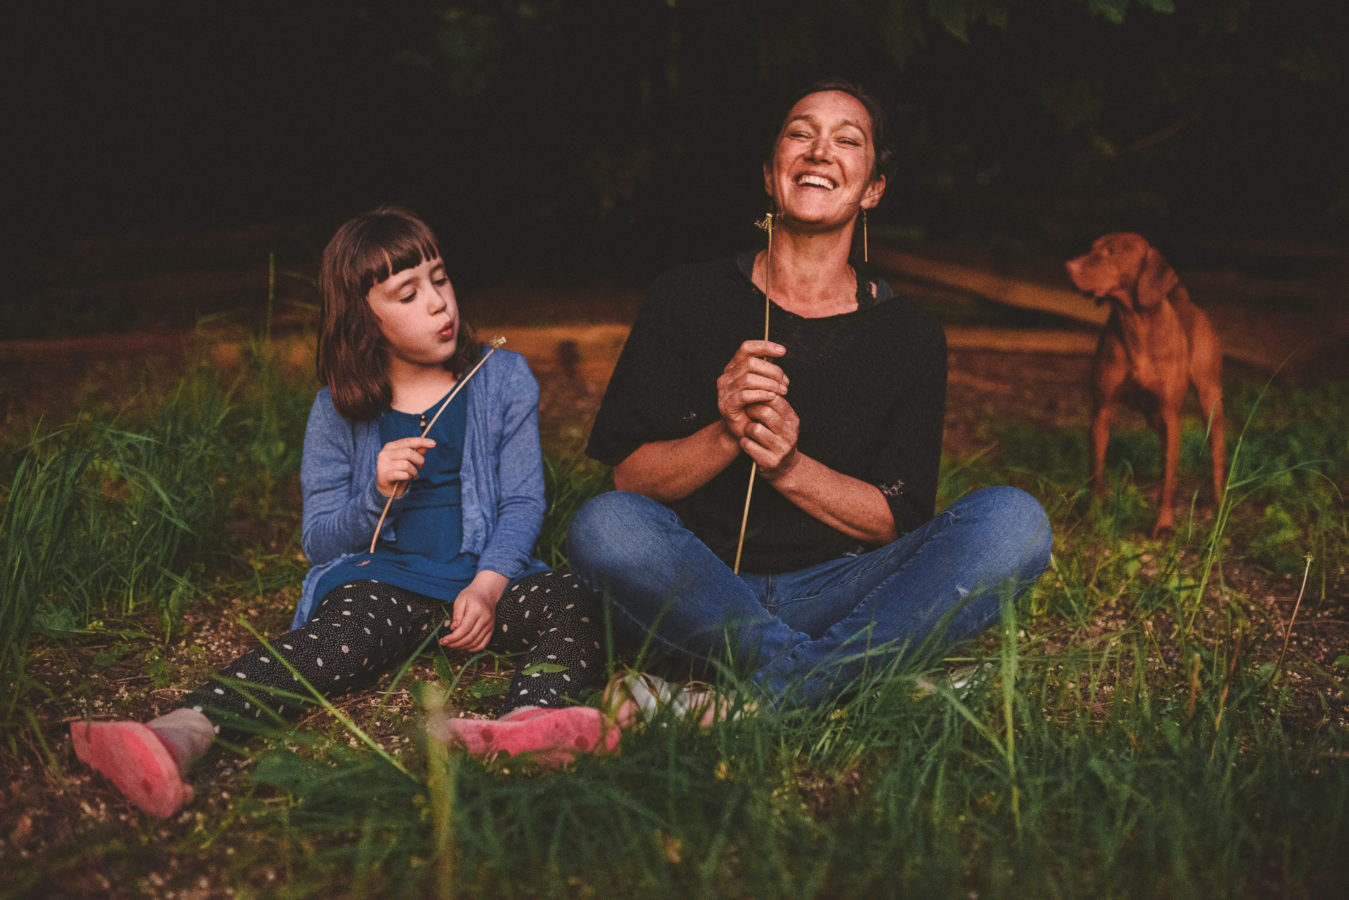 mom and daughter sitting in the evening grass, kid blowing a dandelion and the mom laughing